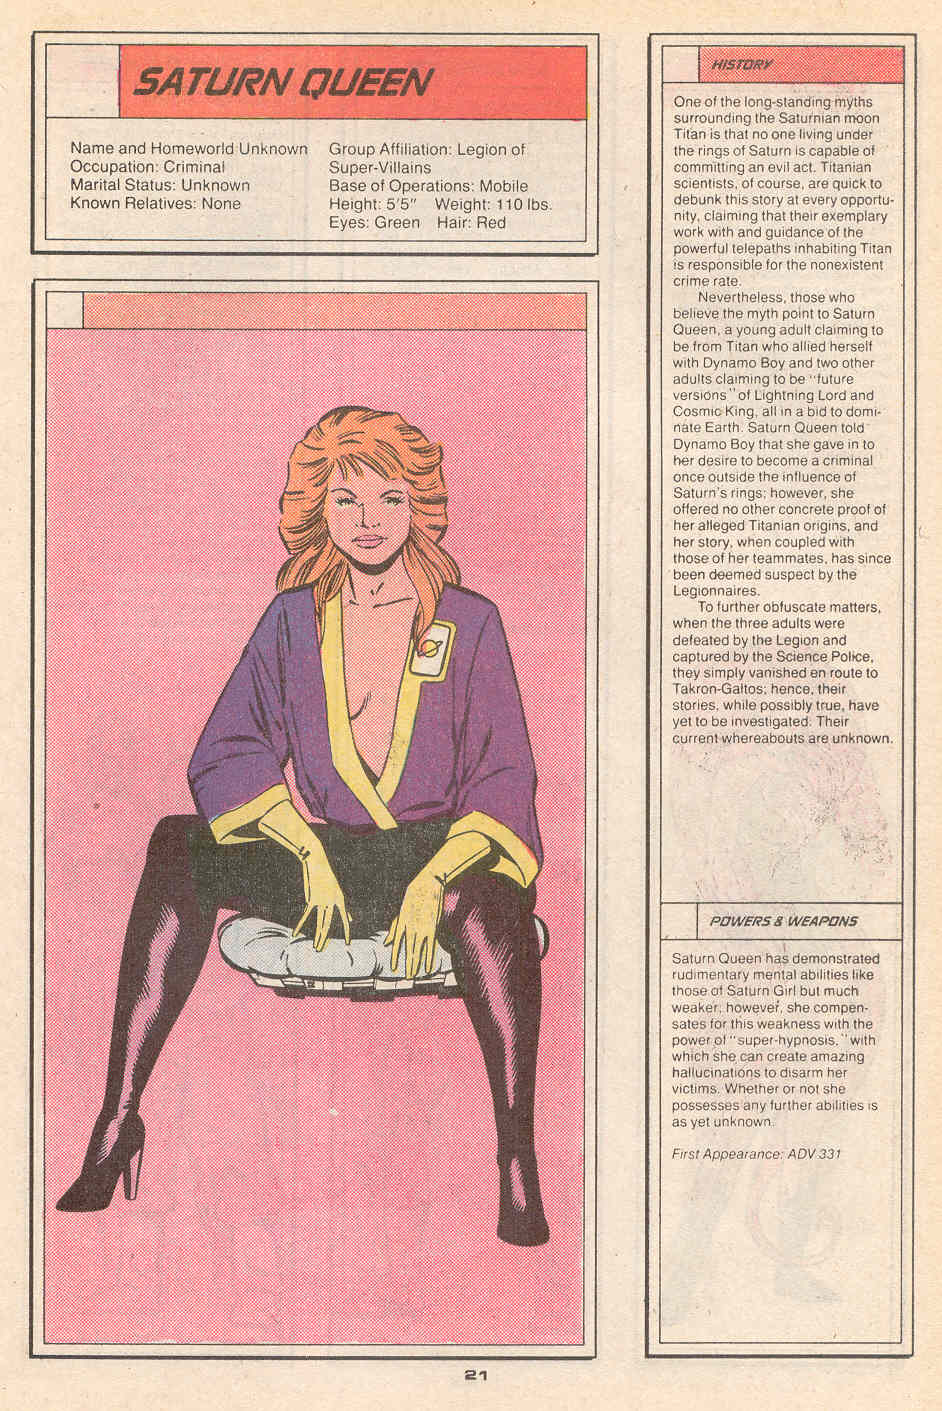 Saturn Queen by Keith Giffen and Larry Mahlstedt - Who's Who in the Legion of Super-Heroes #4